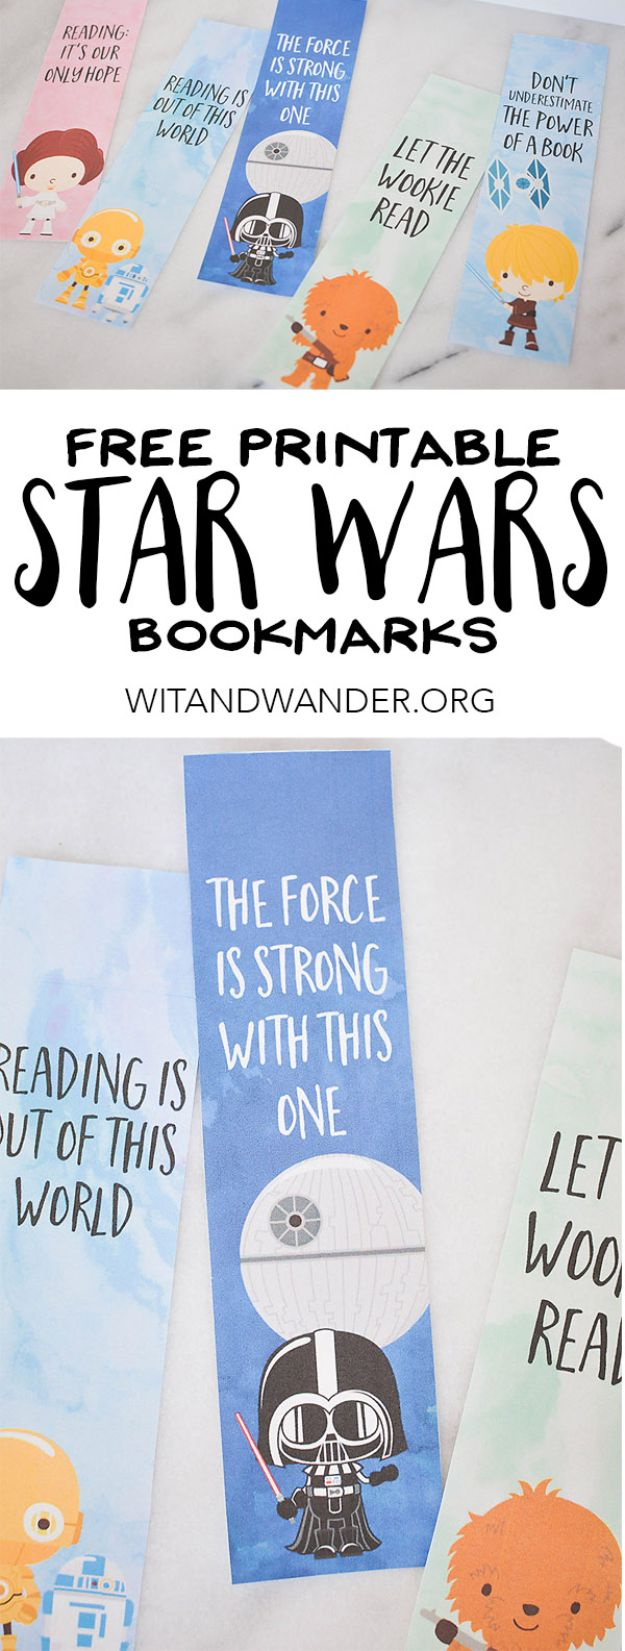 Best Free Printables for Crafts - Star Wars Bookmark Free Printable - Quotes, Templates, Paper Projects and Cards, DIY Gifts Cards, Stickers and Wall Art You Can Print At Home - Use These Fun Do It Yourself Template and Craft Ideas for Your Next Craft Projects - Cute Arts and Crafts Ideas for Kids and Adults to Make on Printer / Printable http://diyjoy.com/best-free-printables-crafts